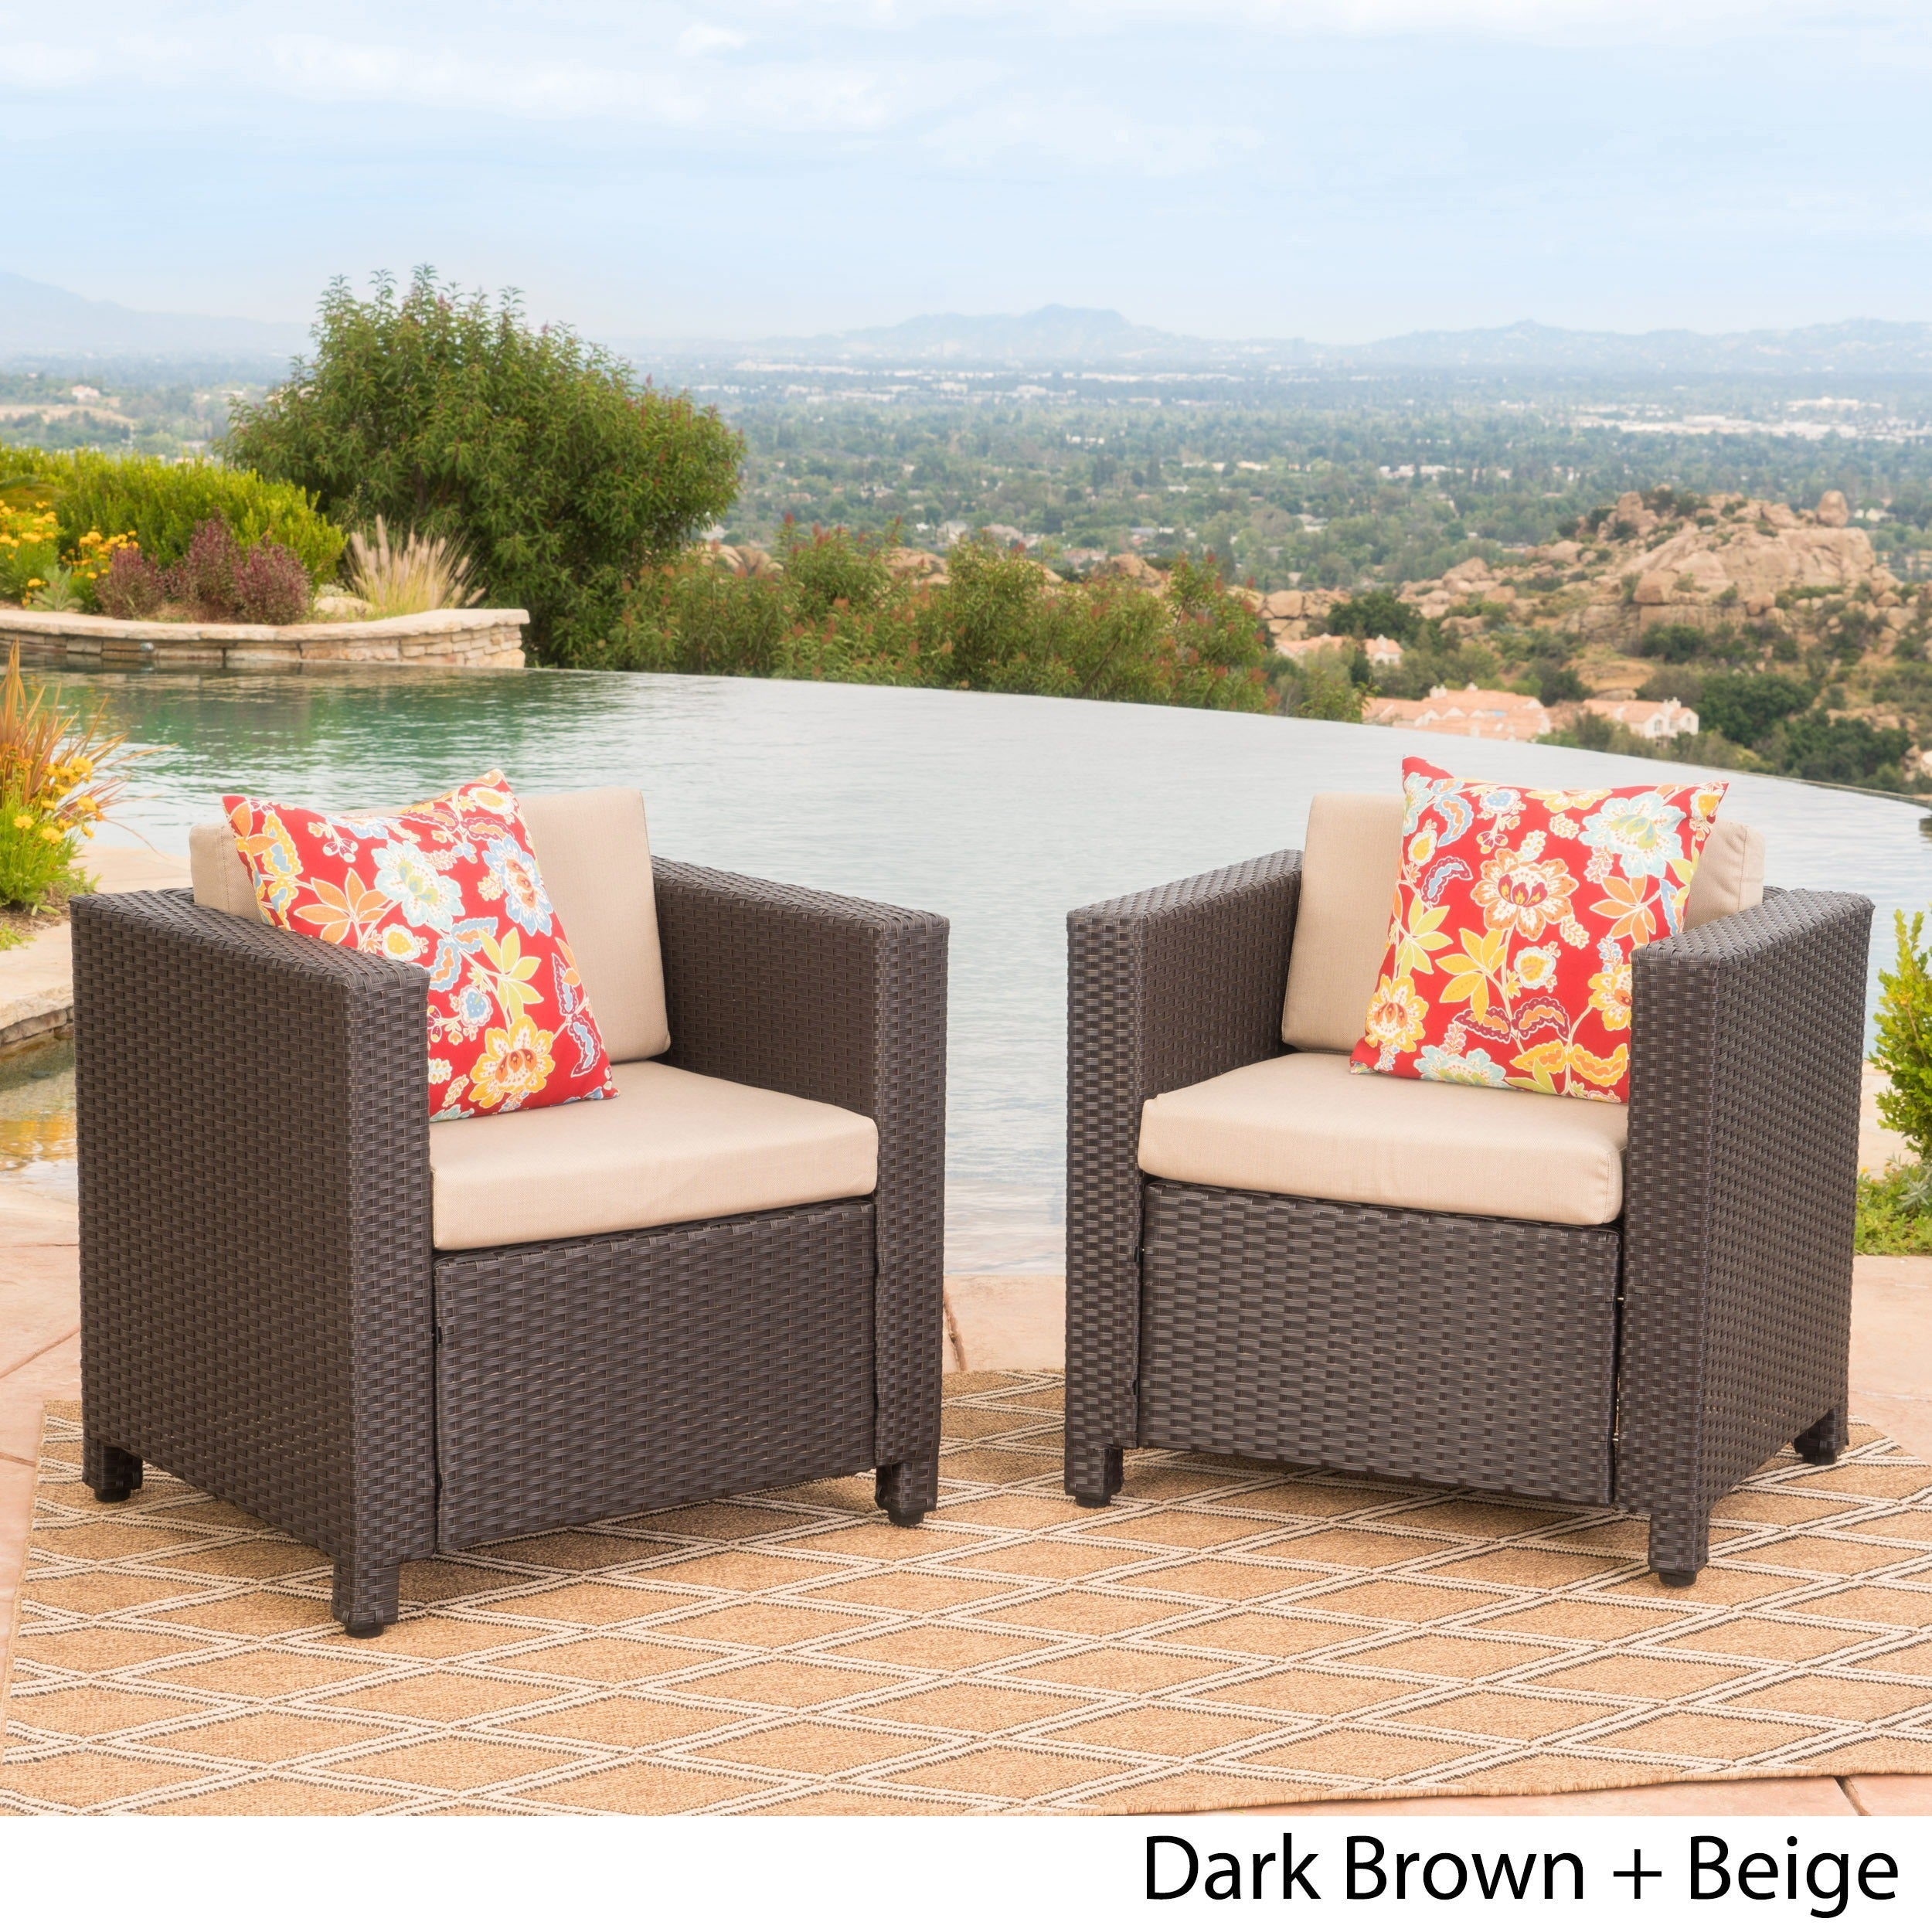 Puerta Outdoor Wicker Club Chair with Cushions Set of 2 by